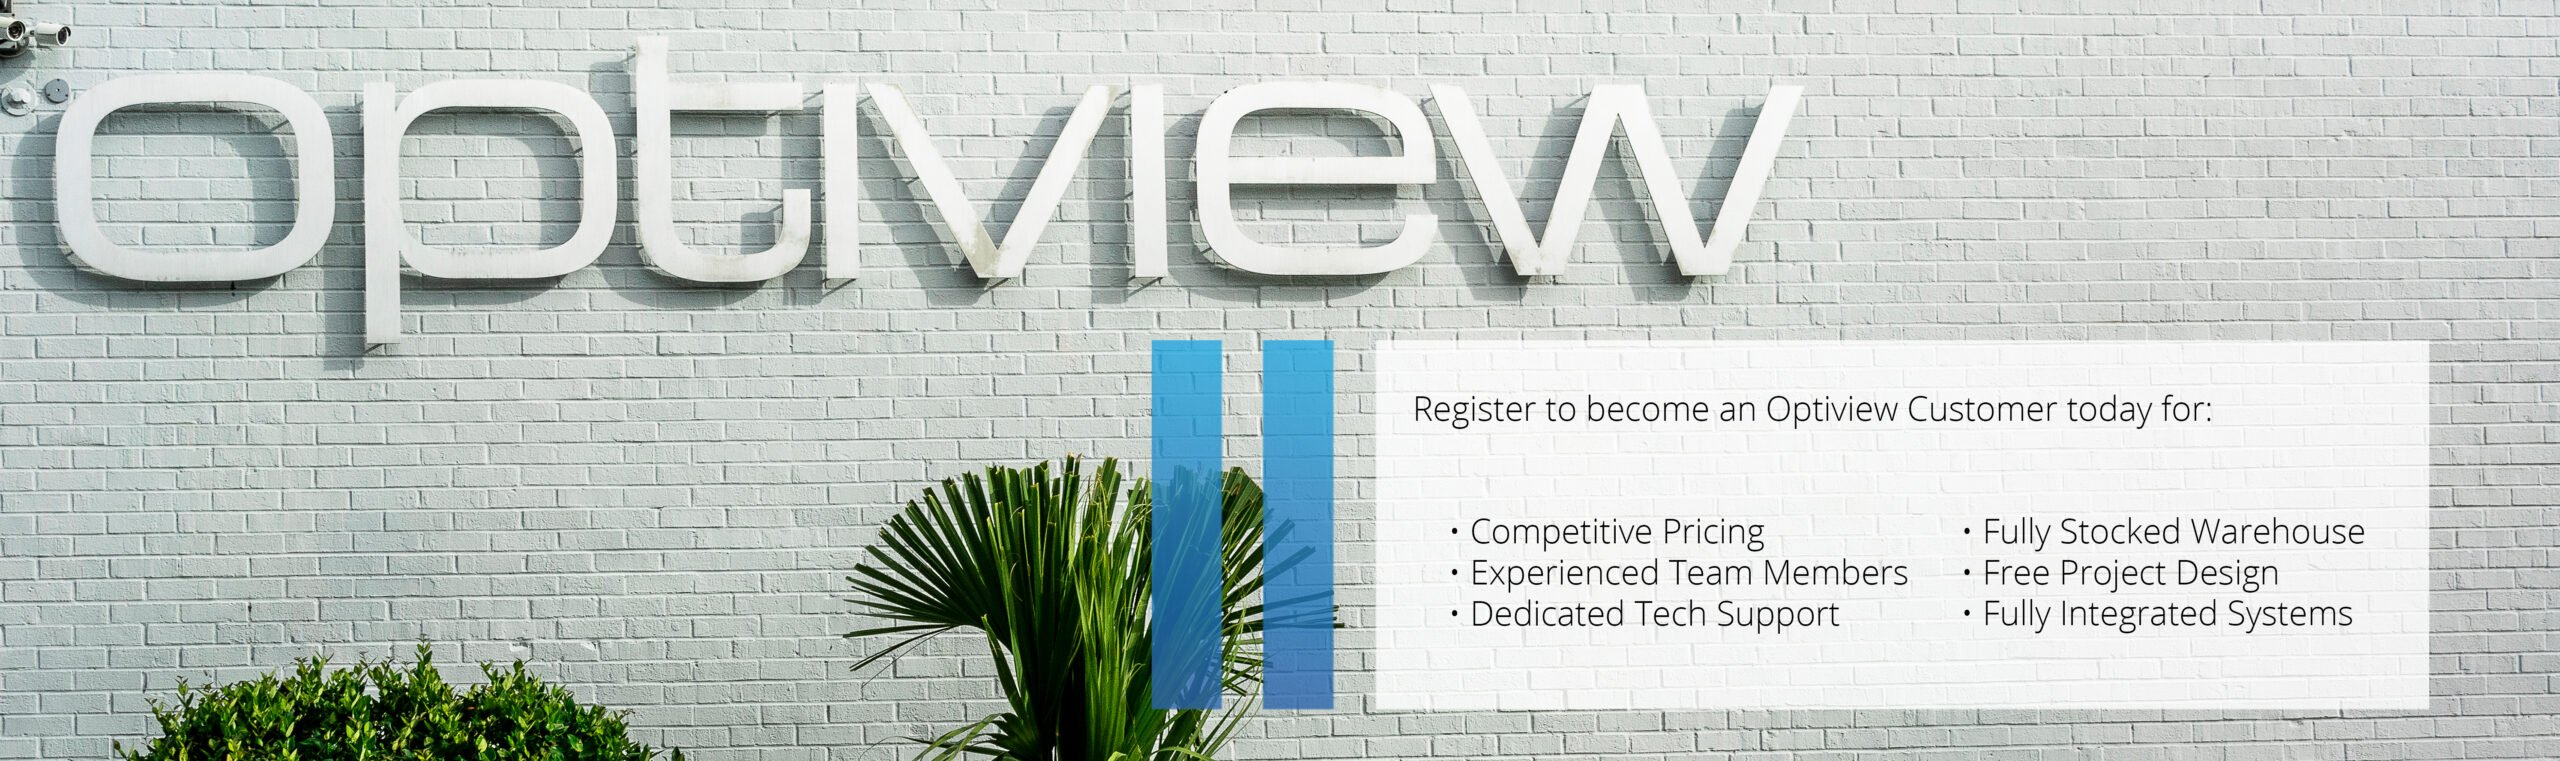 Become an Optiview Dealer today